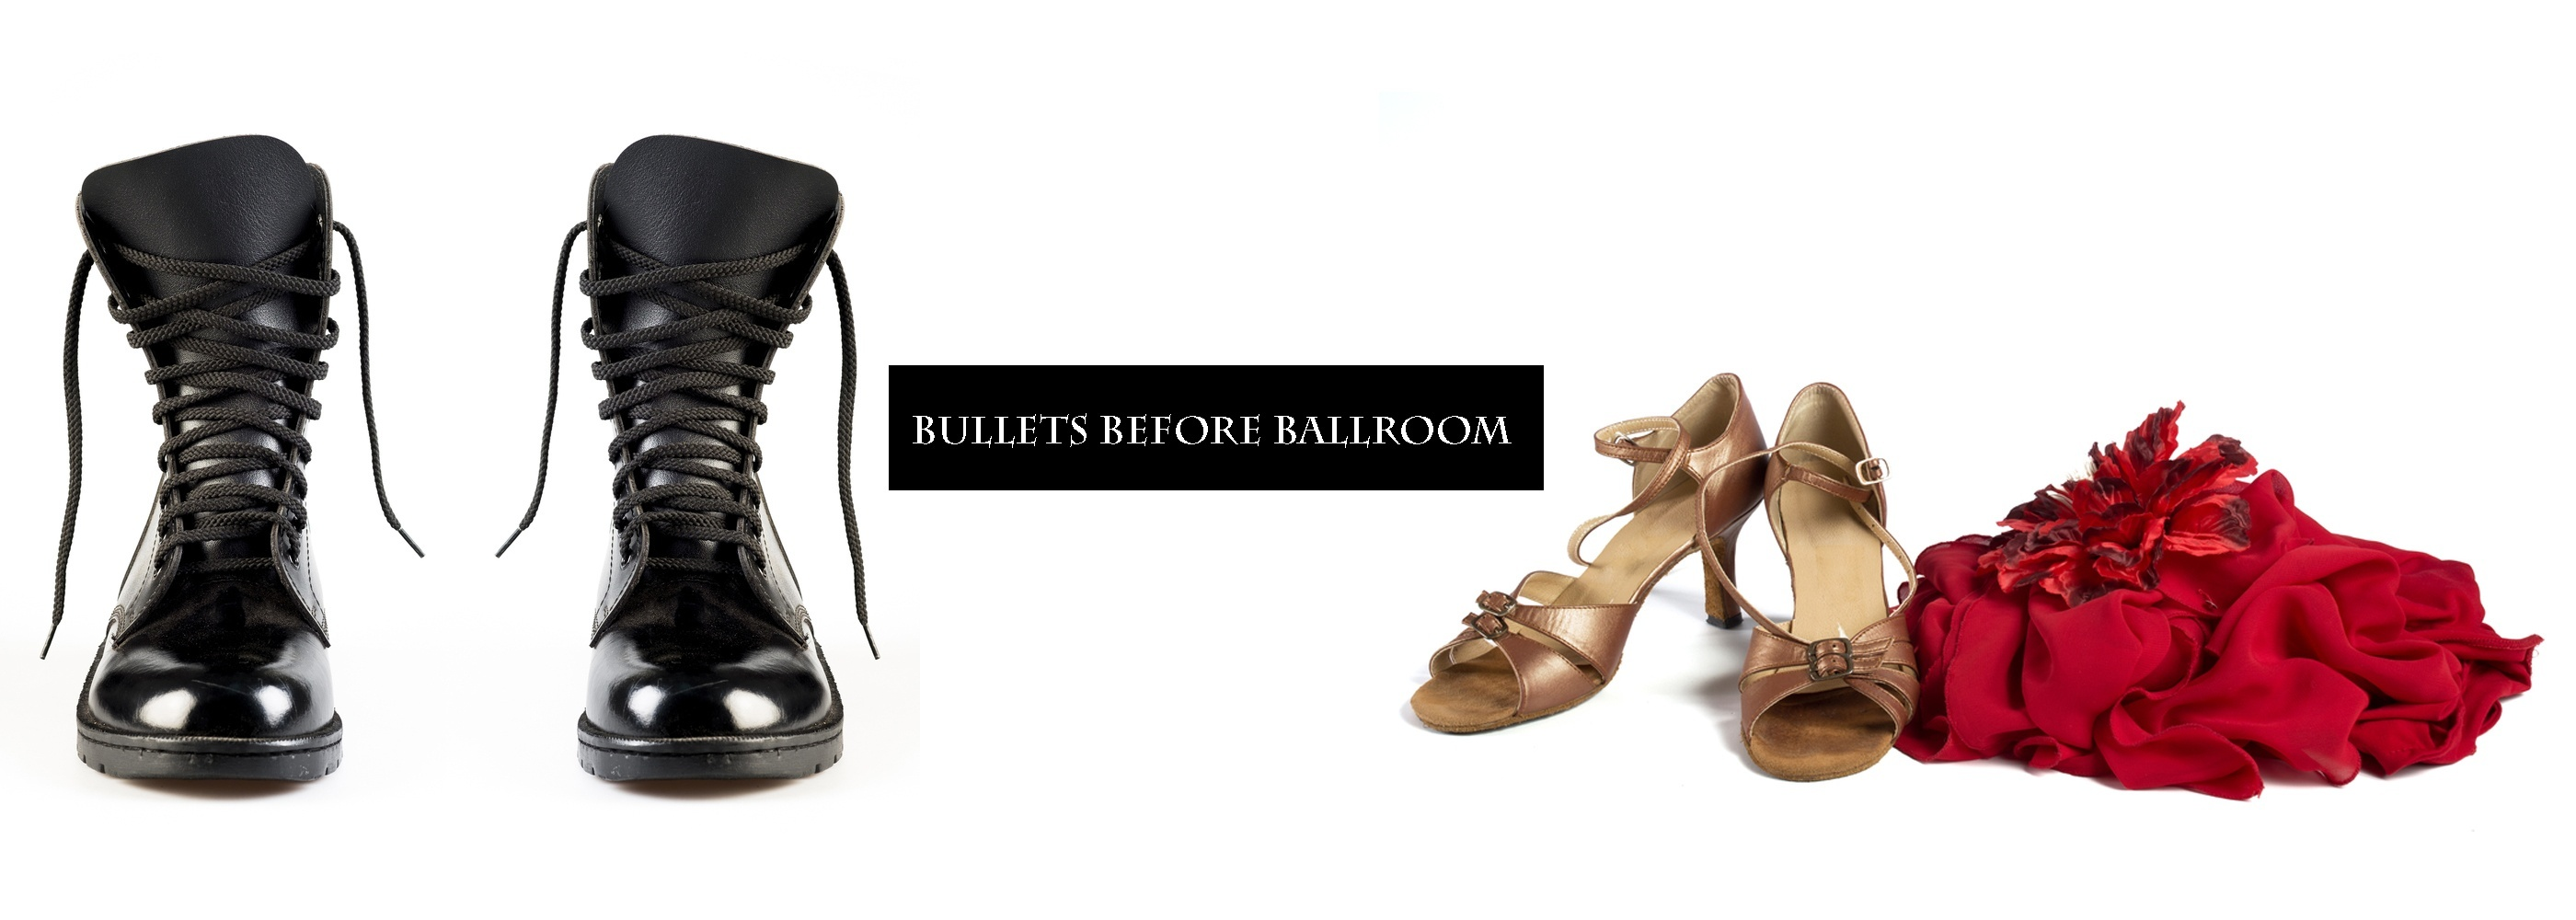 sarah-hudson-bullets-before-ballroom